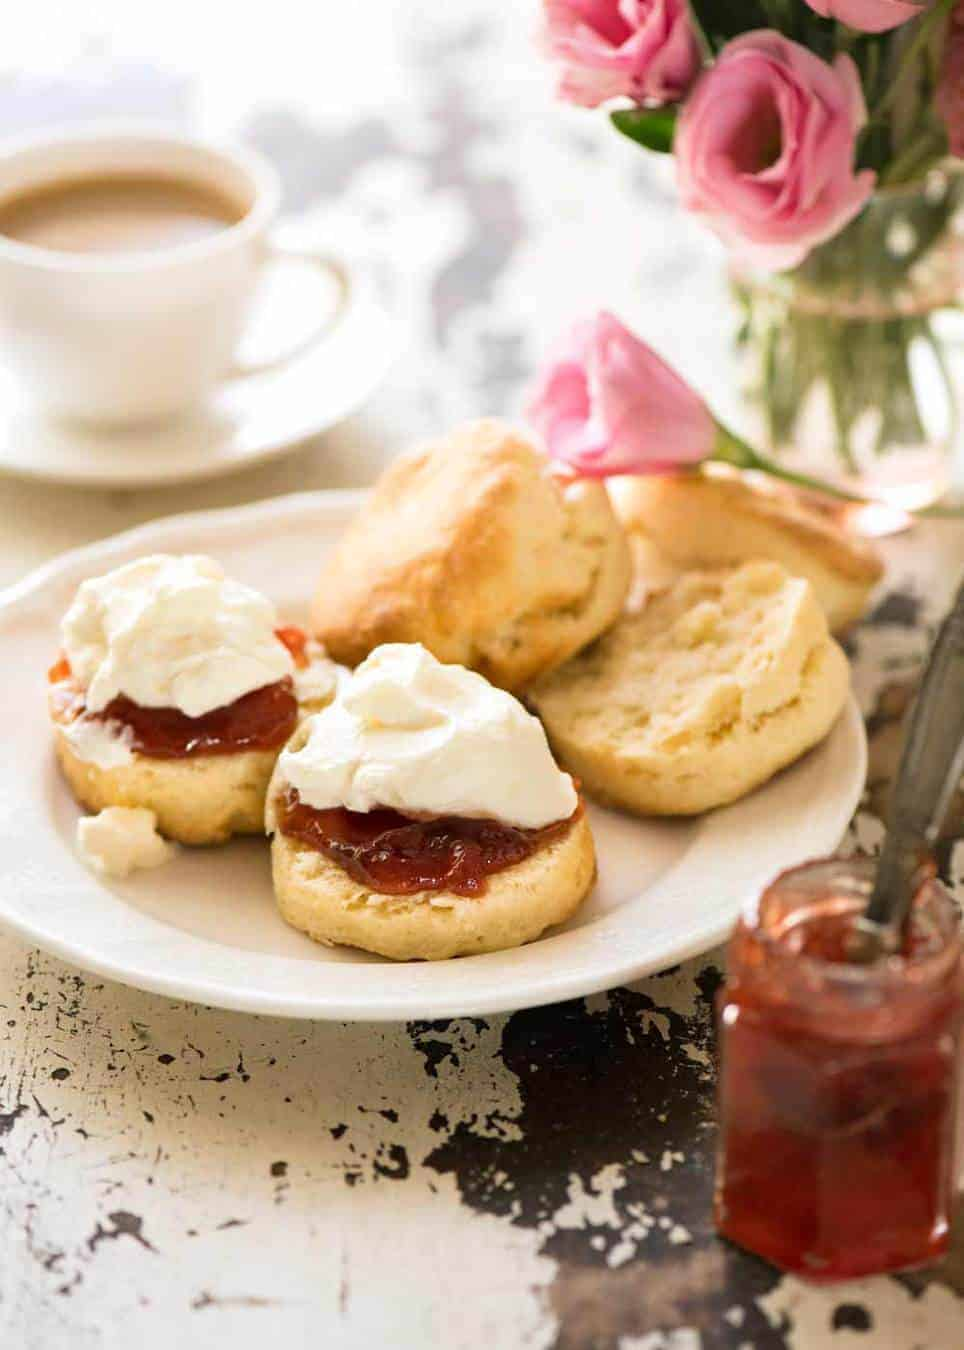 Photo of plain scones on a small white plate with one split open, piled high with jam and cream, ready to be eaten.